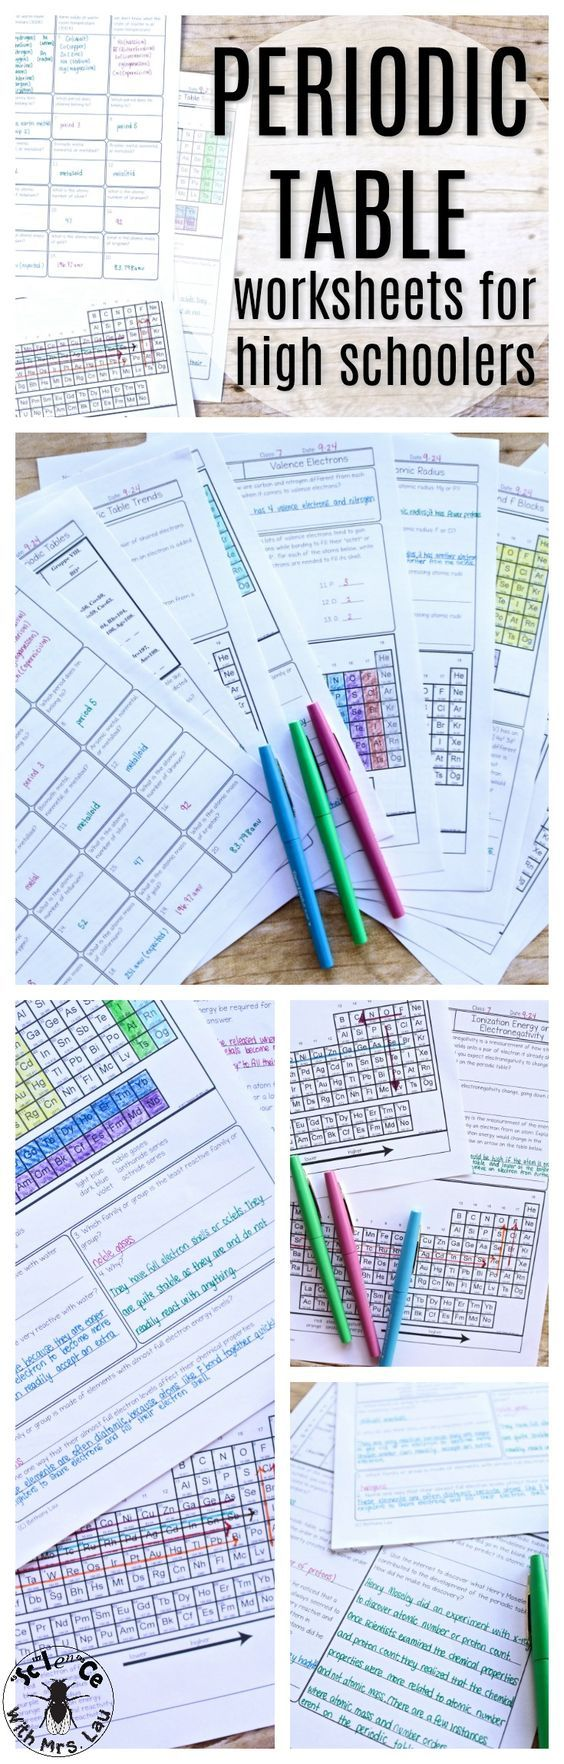 Best 25 electron affinity ideas on pinterest periodic table these set of homework pages or worksheets are perfect for helping your students really understand periodic table trends each page instructs students to gamestrikefo Choice Image